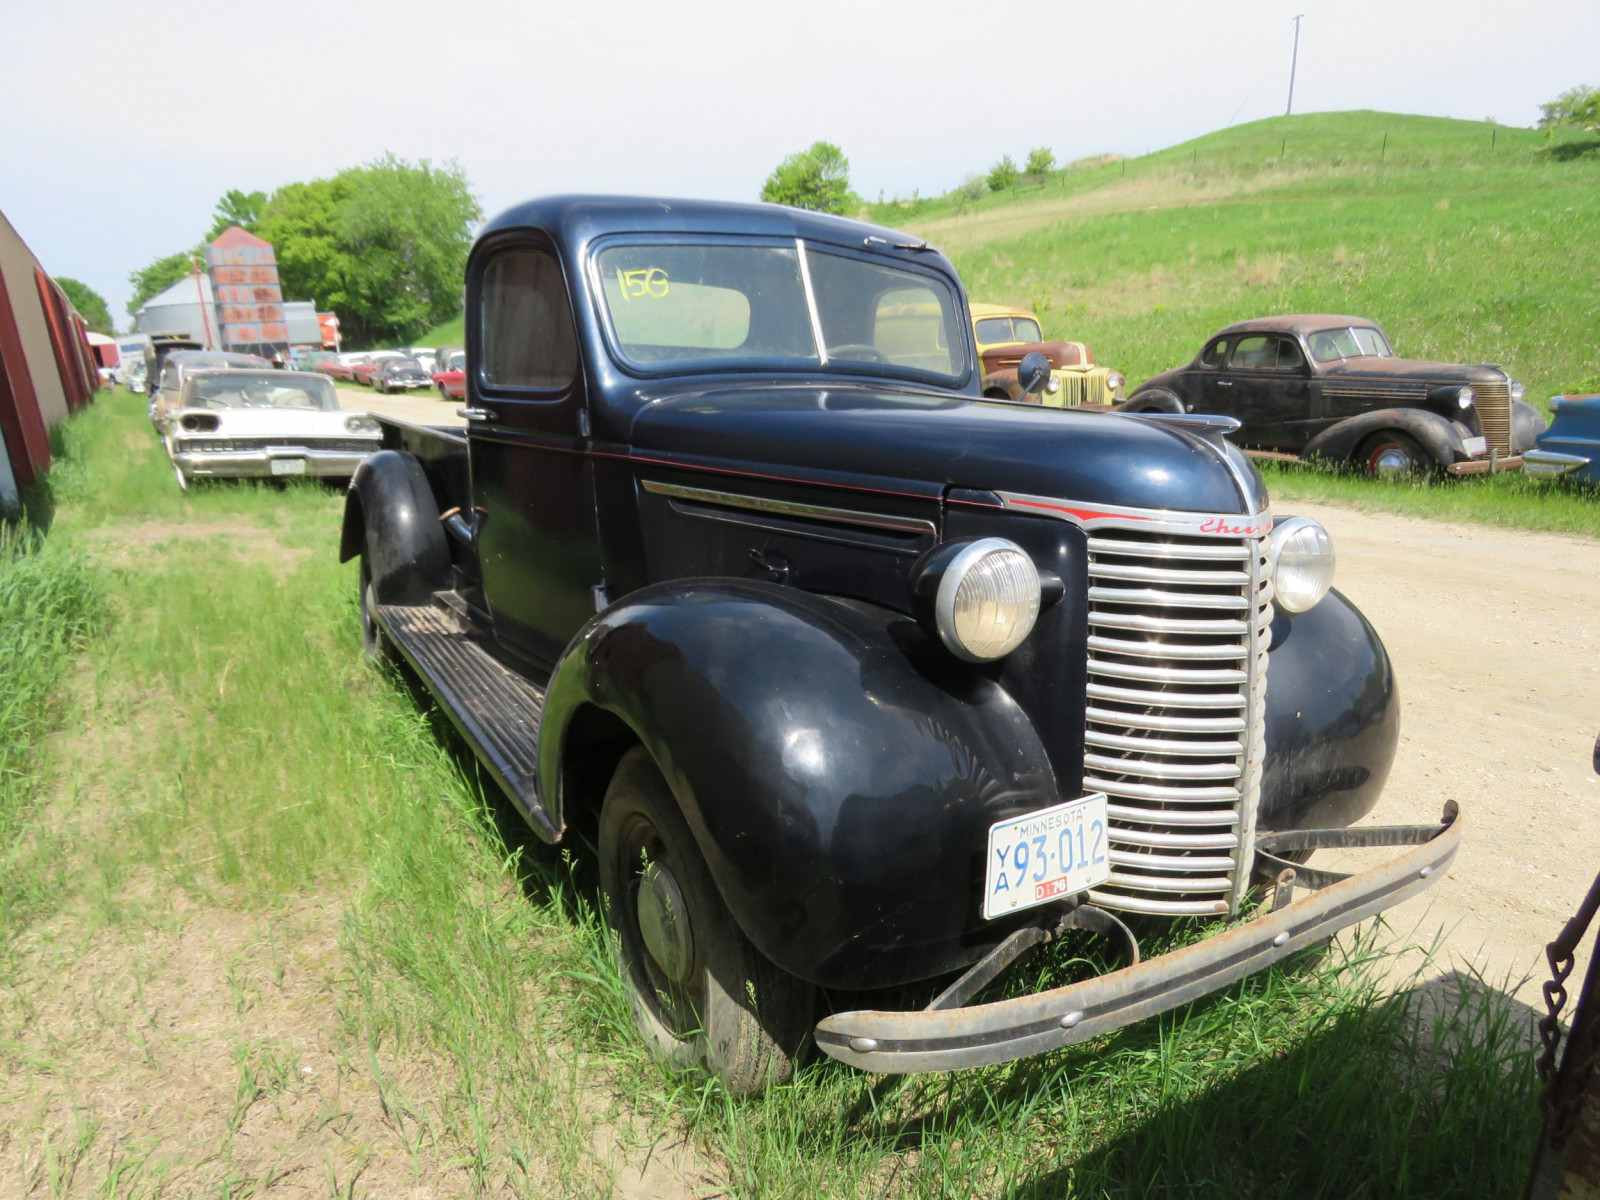 1939 Chevrolet Pickup 21JD057433 - Image 1